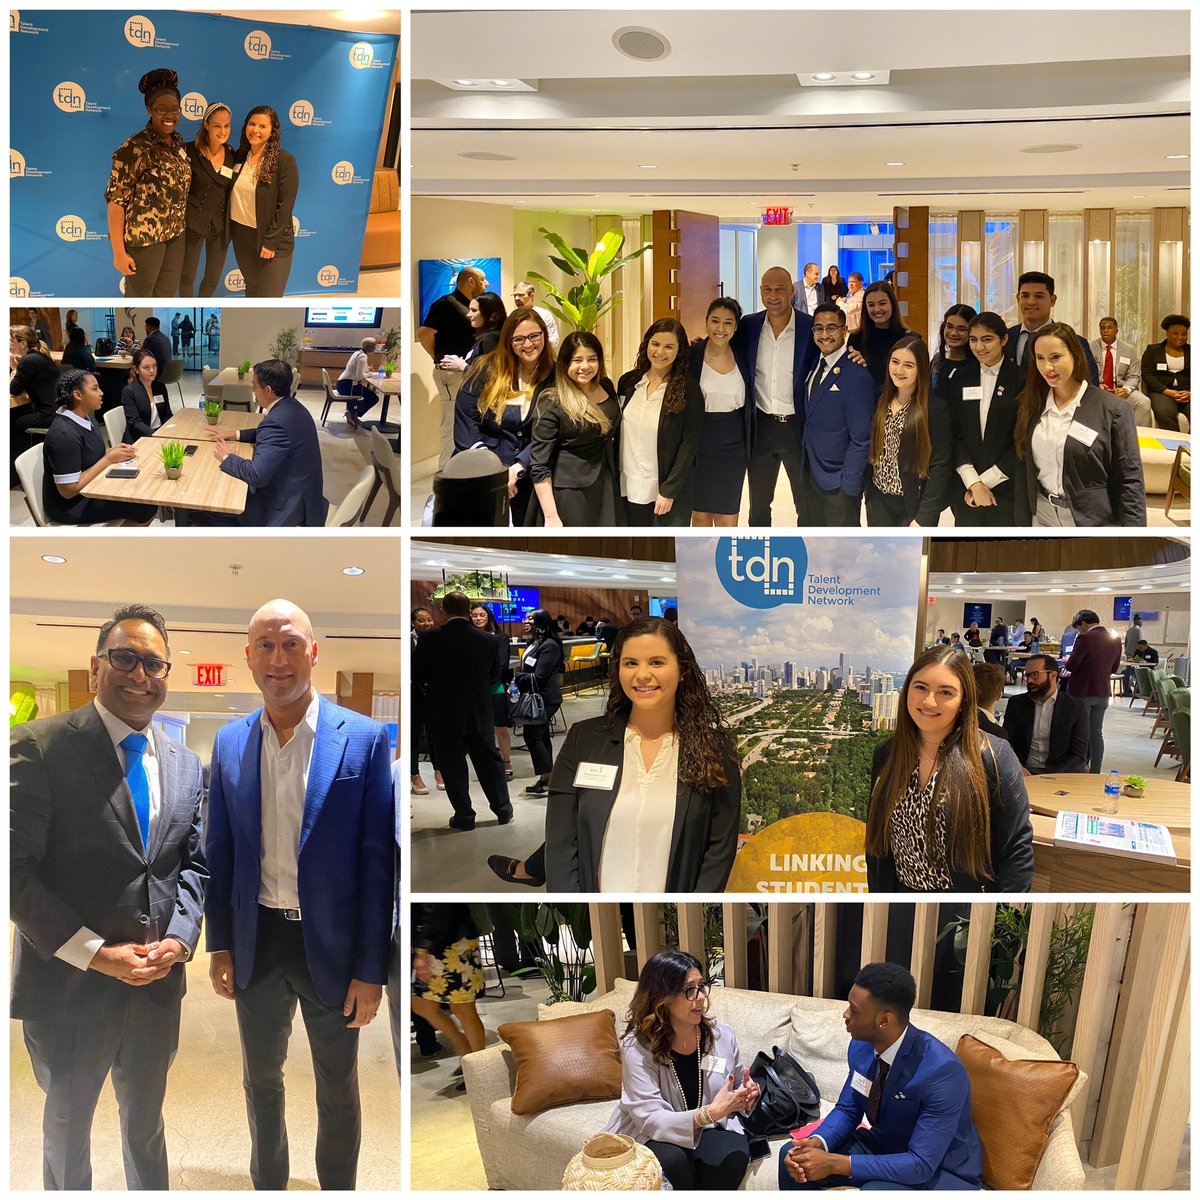 Grateful to all of the #ceos and #students who participated in our first ever @TDNMiami #CeosForADay event. Our #Miami has such limitless #talent and it is on all of us to maximize #opportunity via paid #internships #OCOG Thank you @HeliosEdFnd @ATT @Marlins #MiamiBoss